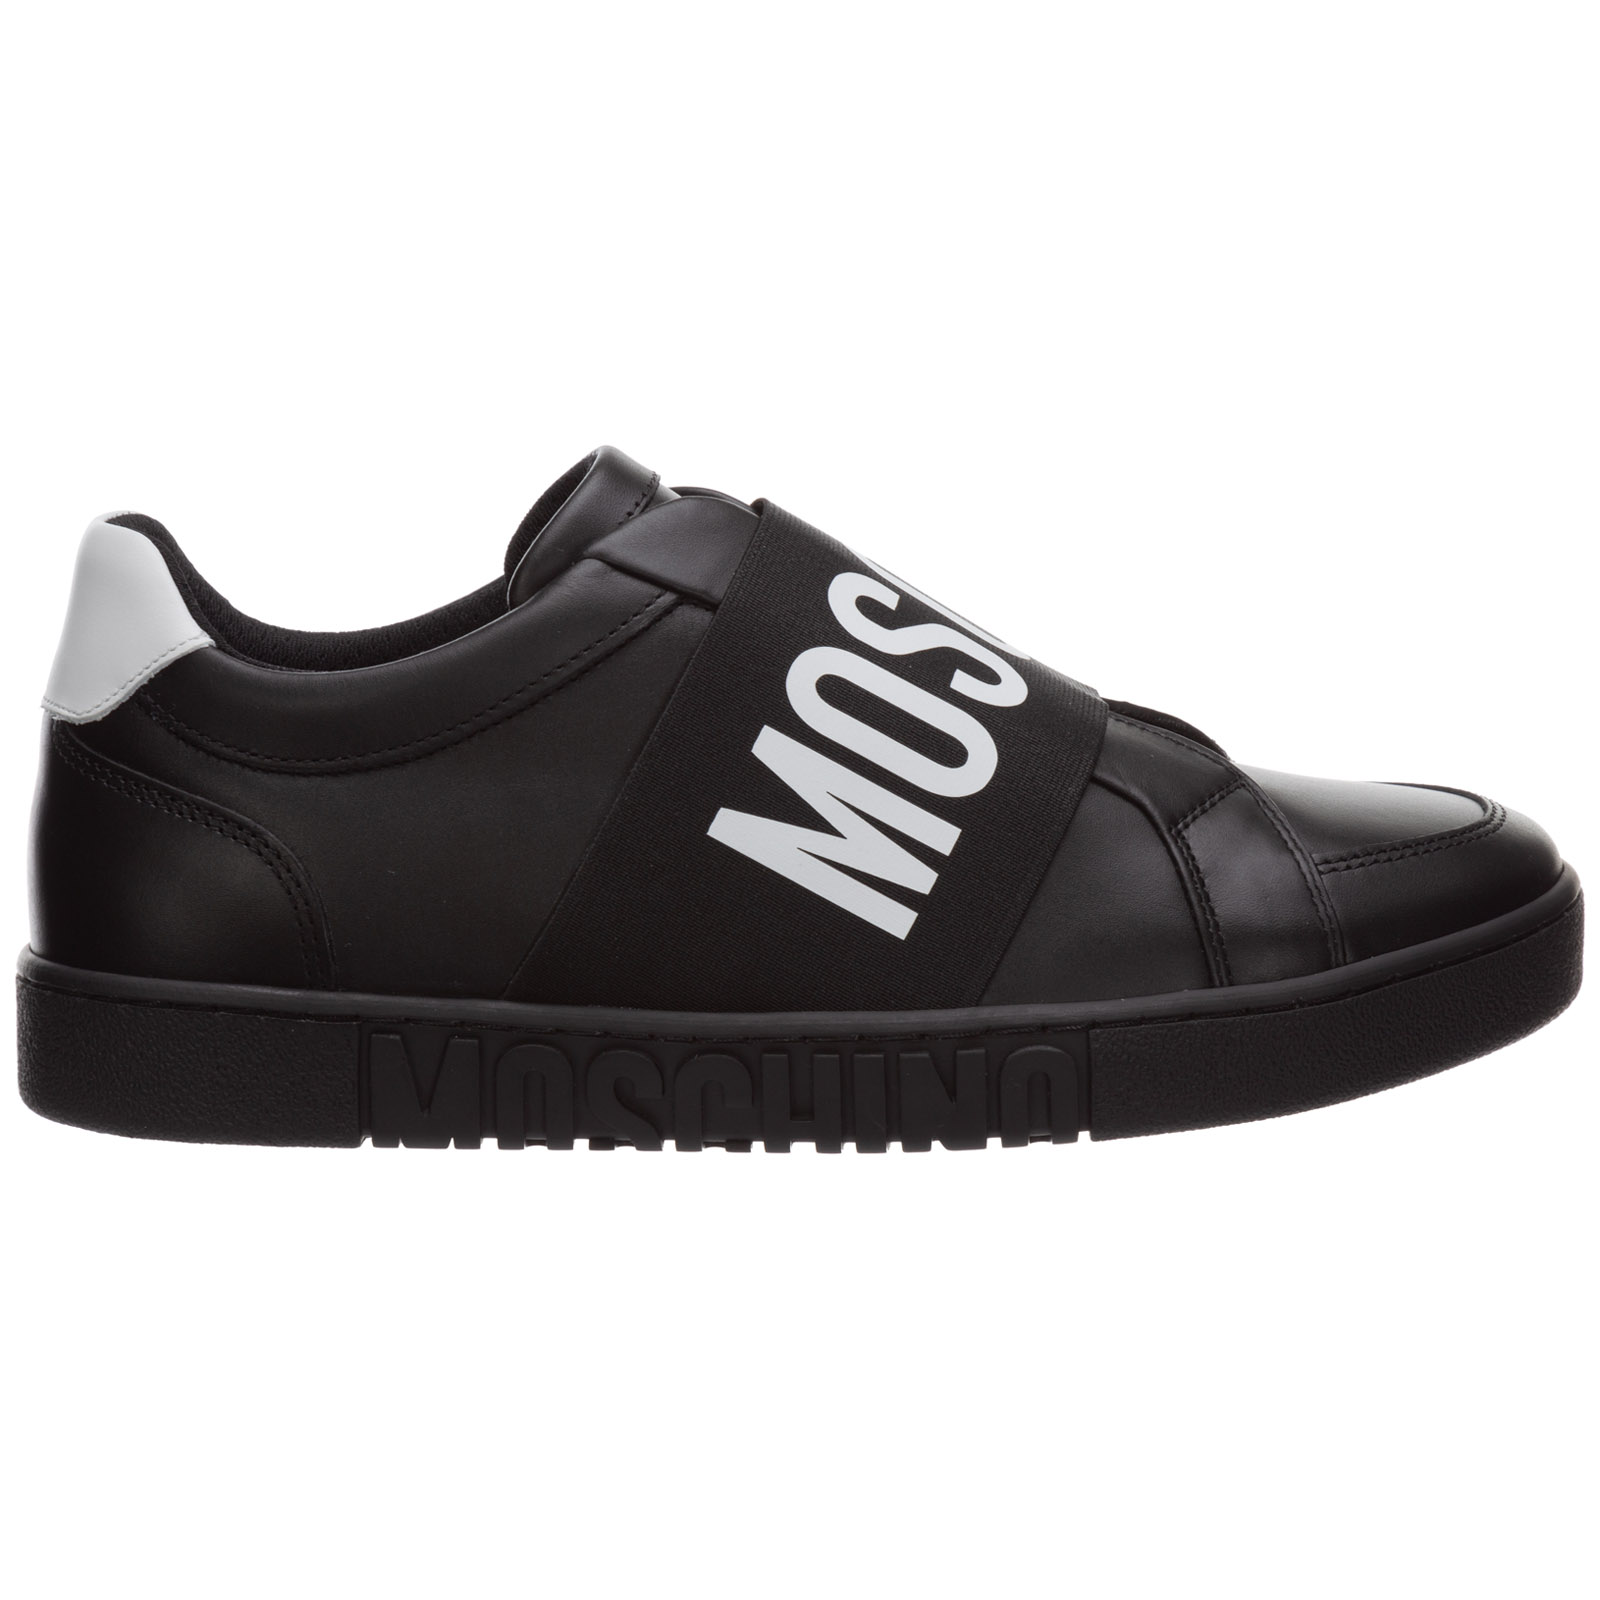 Moschino MEN'S SHOES LEATHER TRAINERS SNEAKERS LOGO